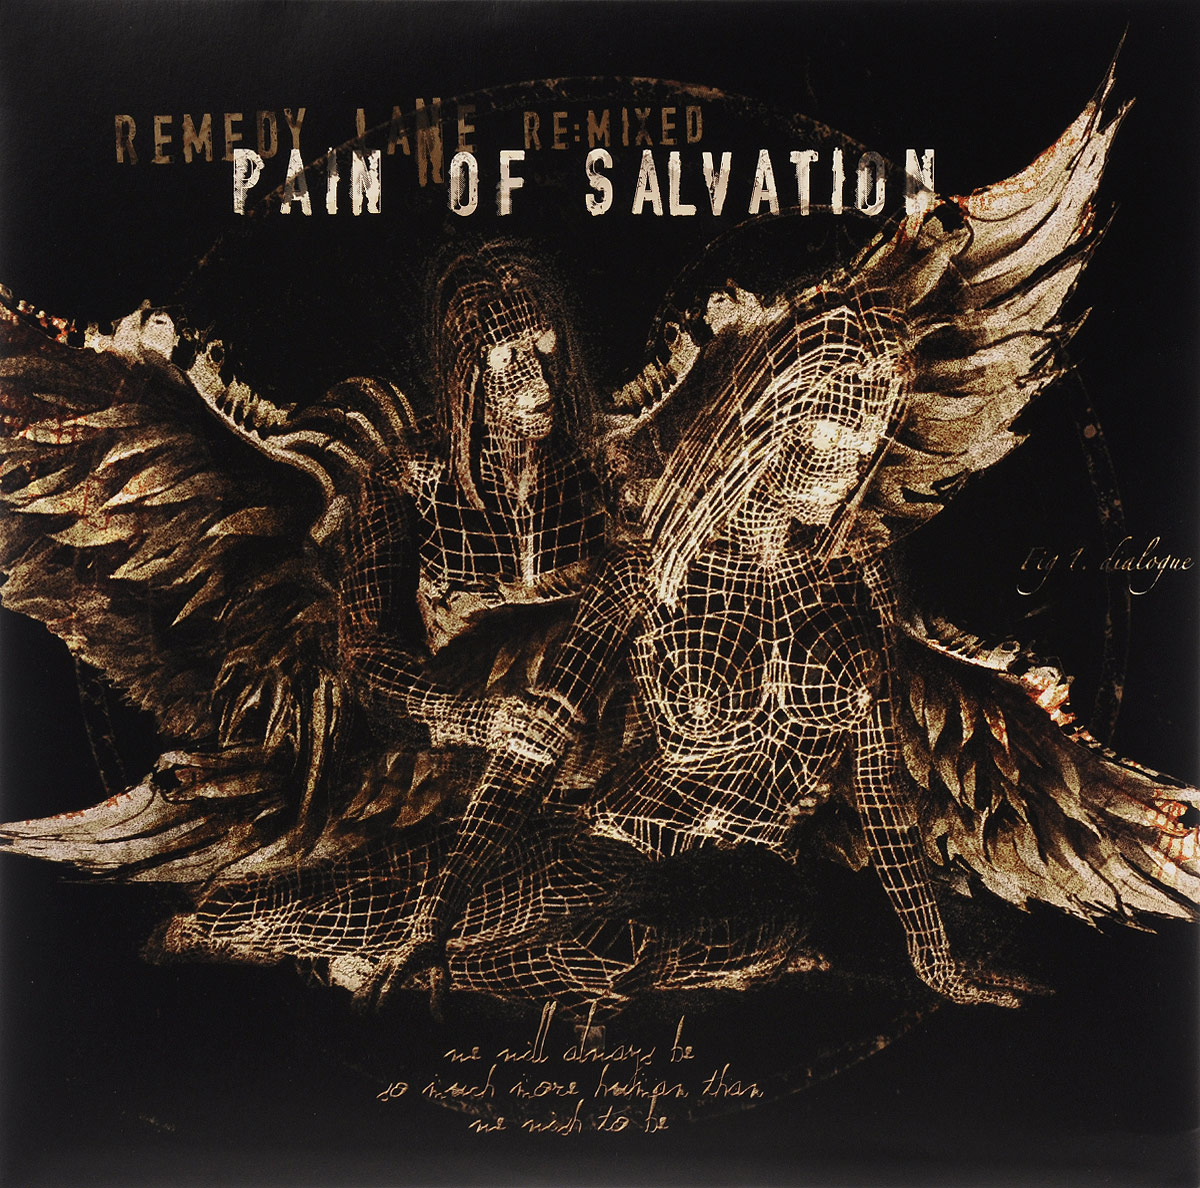 Pain Of Salvation Pain Of Salvation. Remedy Lane Re: Mixed (2 CD) pain of salvation pain of salvation one hour by the concrete lake 2 lp cd